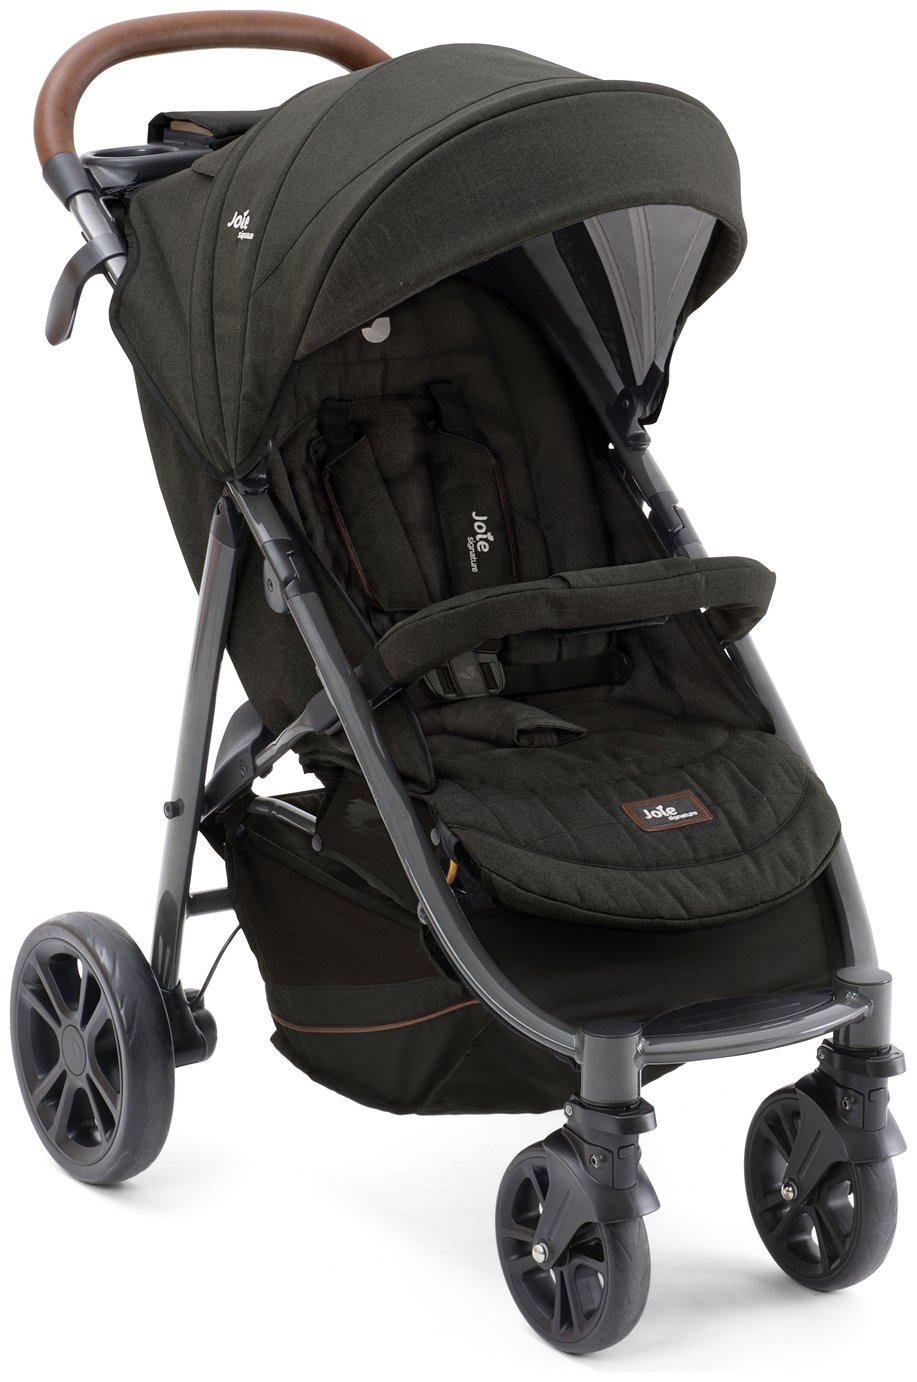 Joie Signature Litetrax 4 Flex Pushchair - Noir